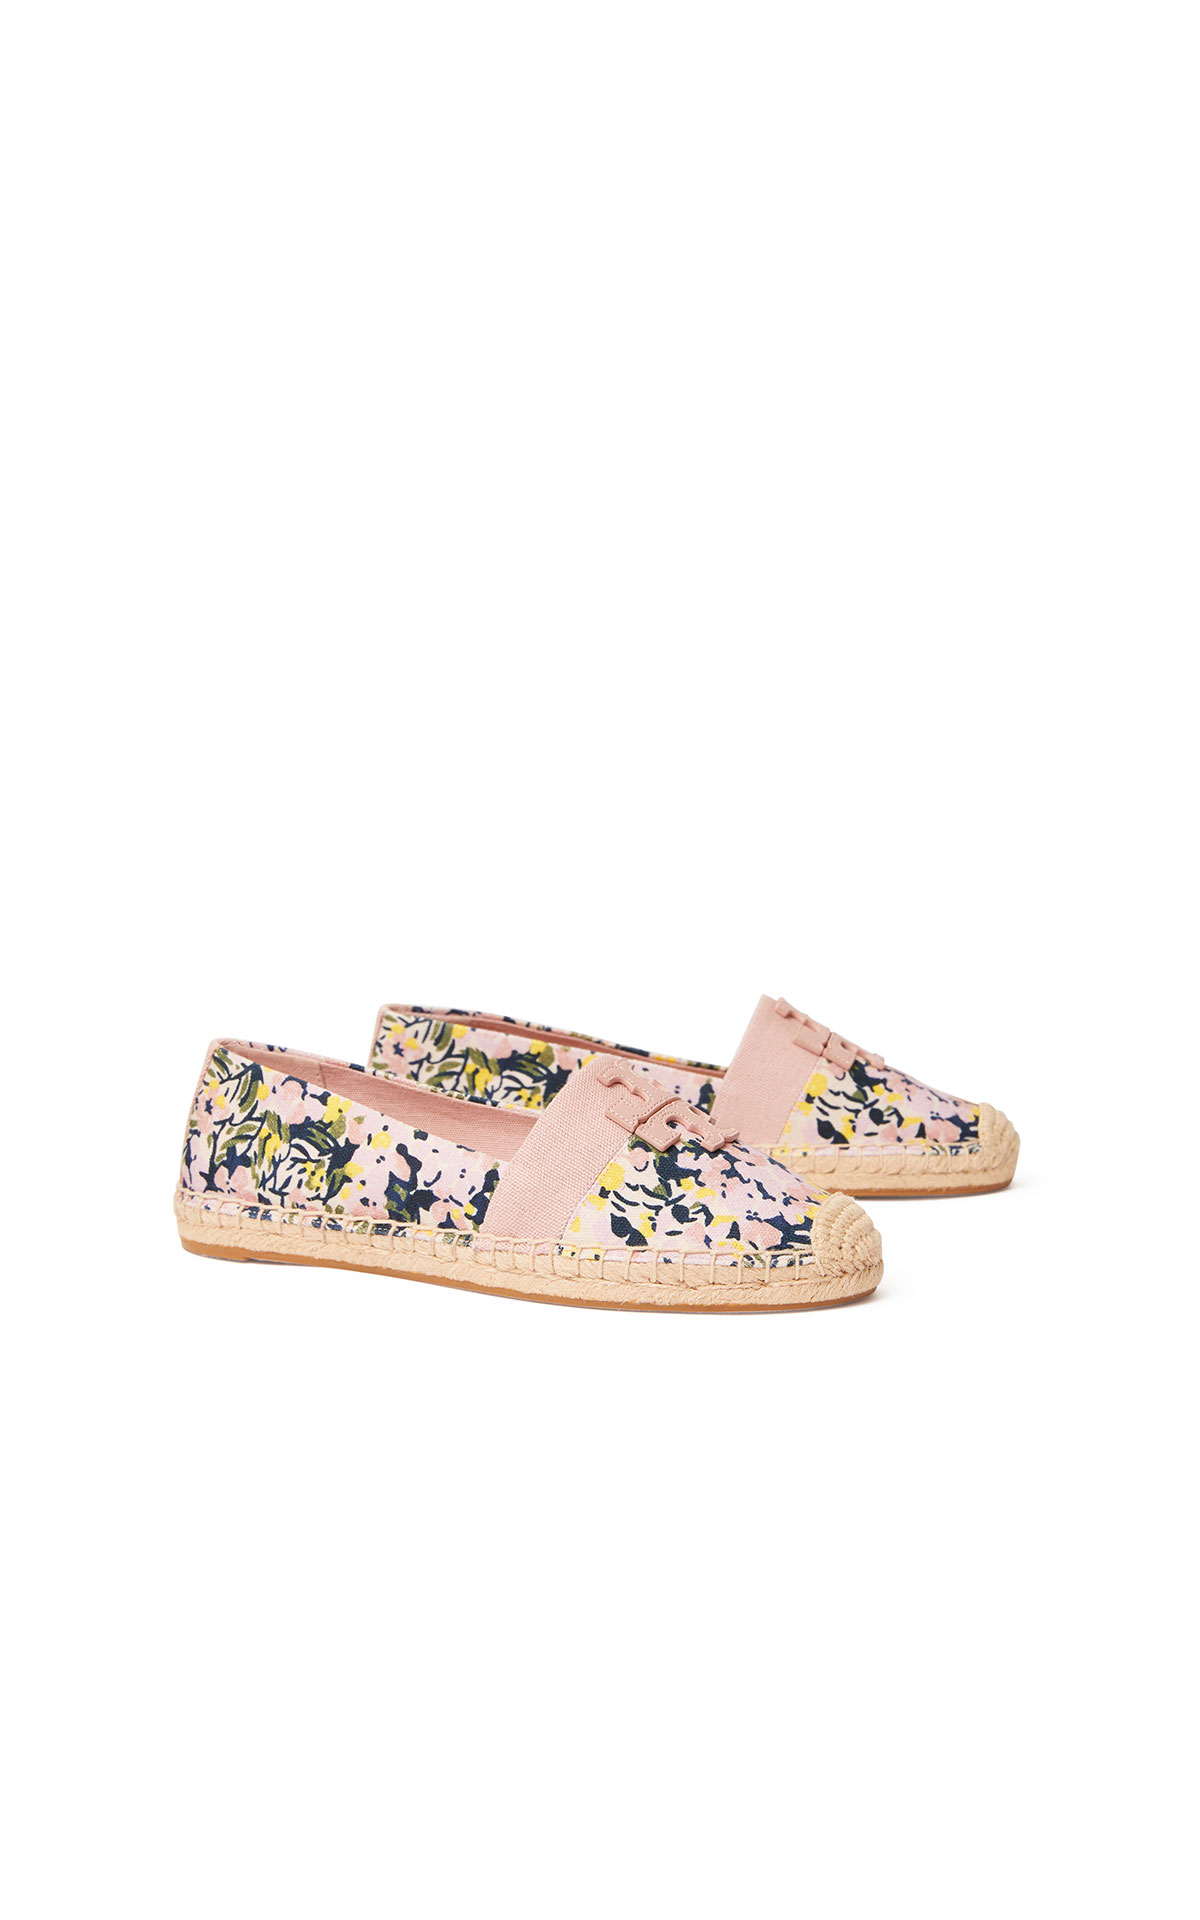 Tory Burch Weston flat espadrille from Bicester Village